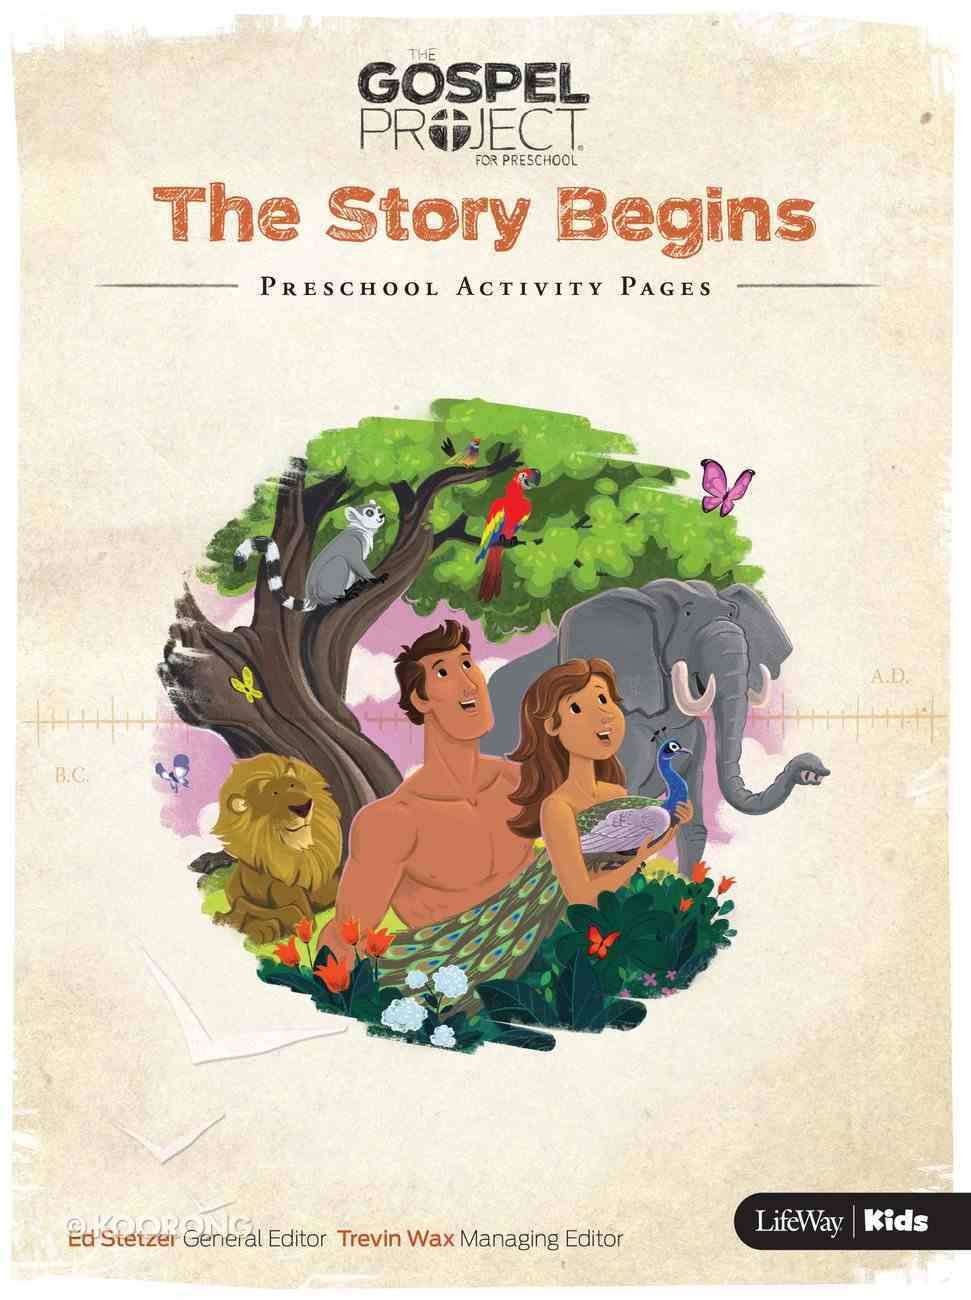 The Story Begins (Preschool Activity Pages) (#01 in The Gospel Project For Kids 2015-18 Series) Paperback